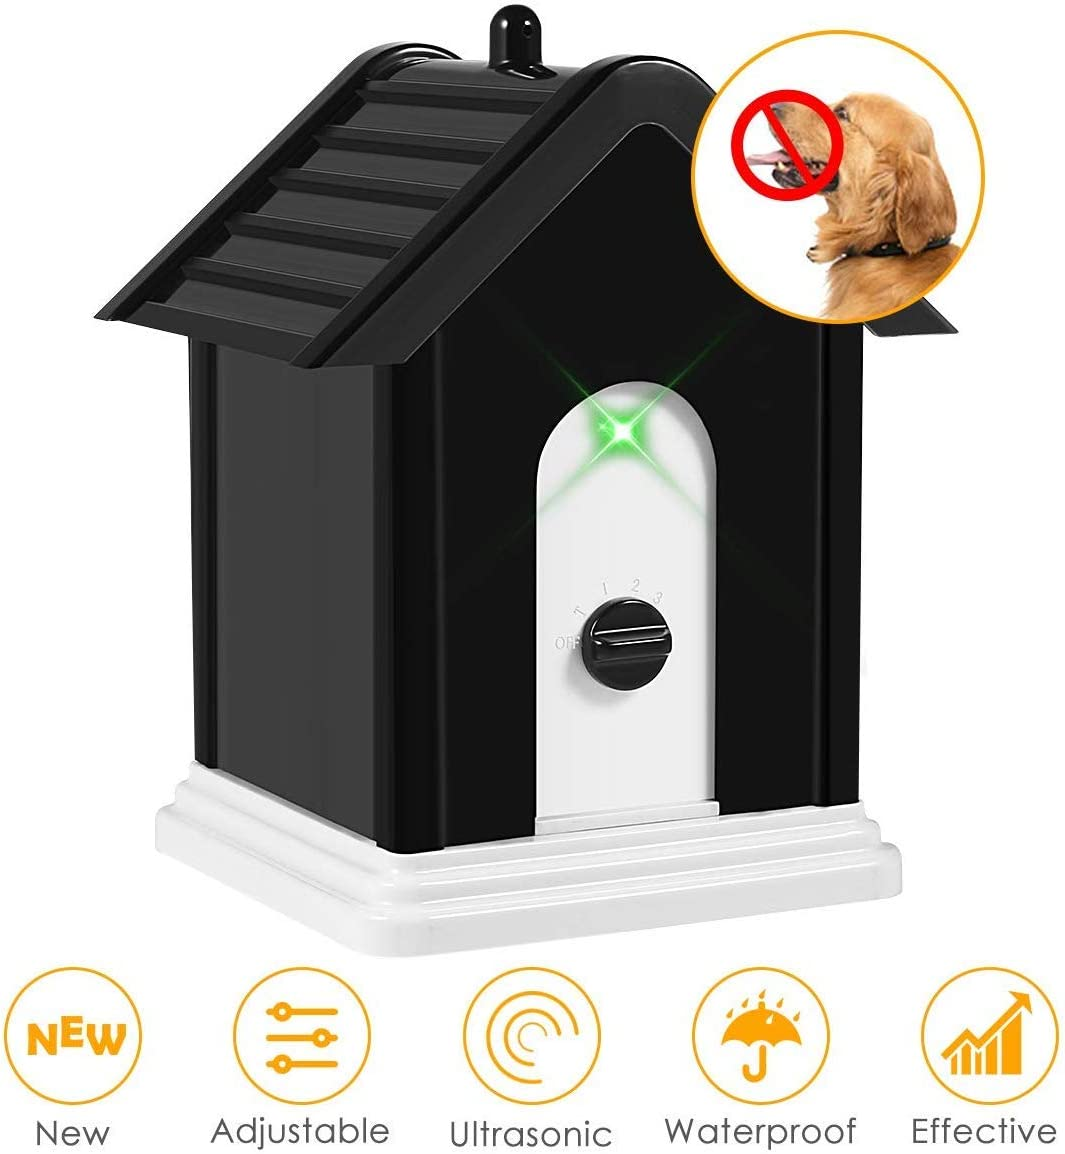 Geohee Anti Barking Device, 2019 Advanced Outdoor Dog Repellent Device Bark Box with Adjustable Ultrasonic Level Control Safe for Dogs, Bark Control Device, Sonic Bark Deterrents